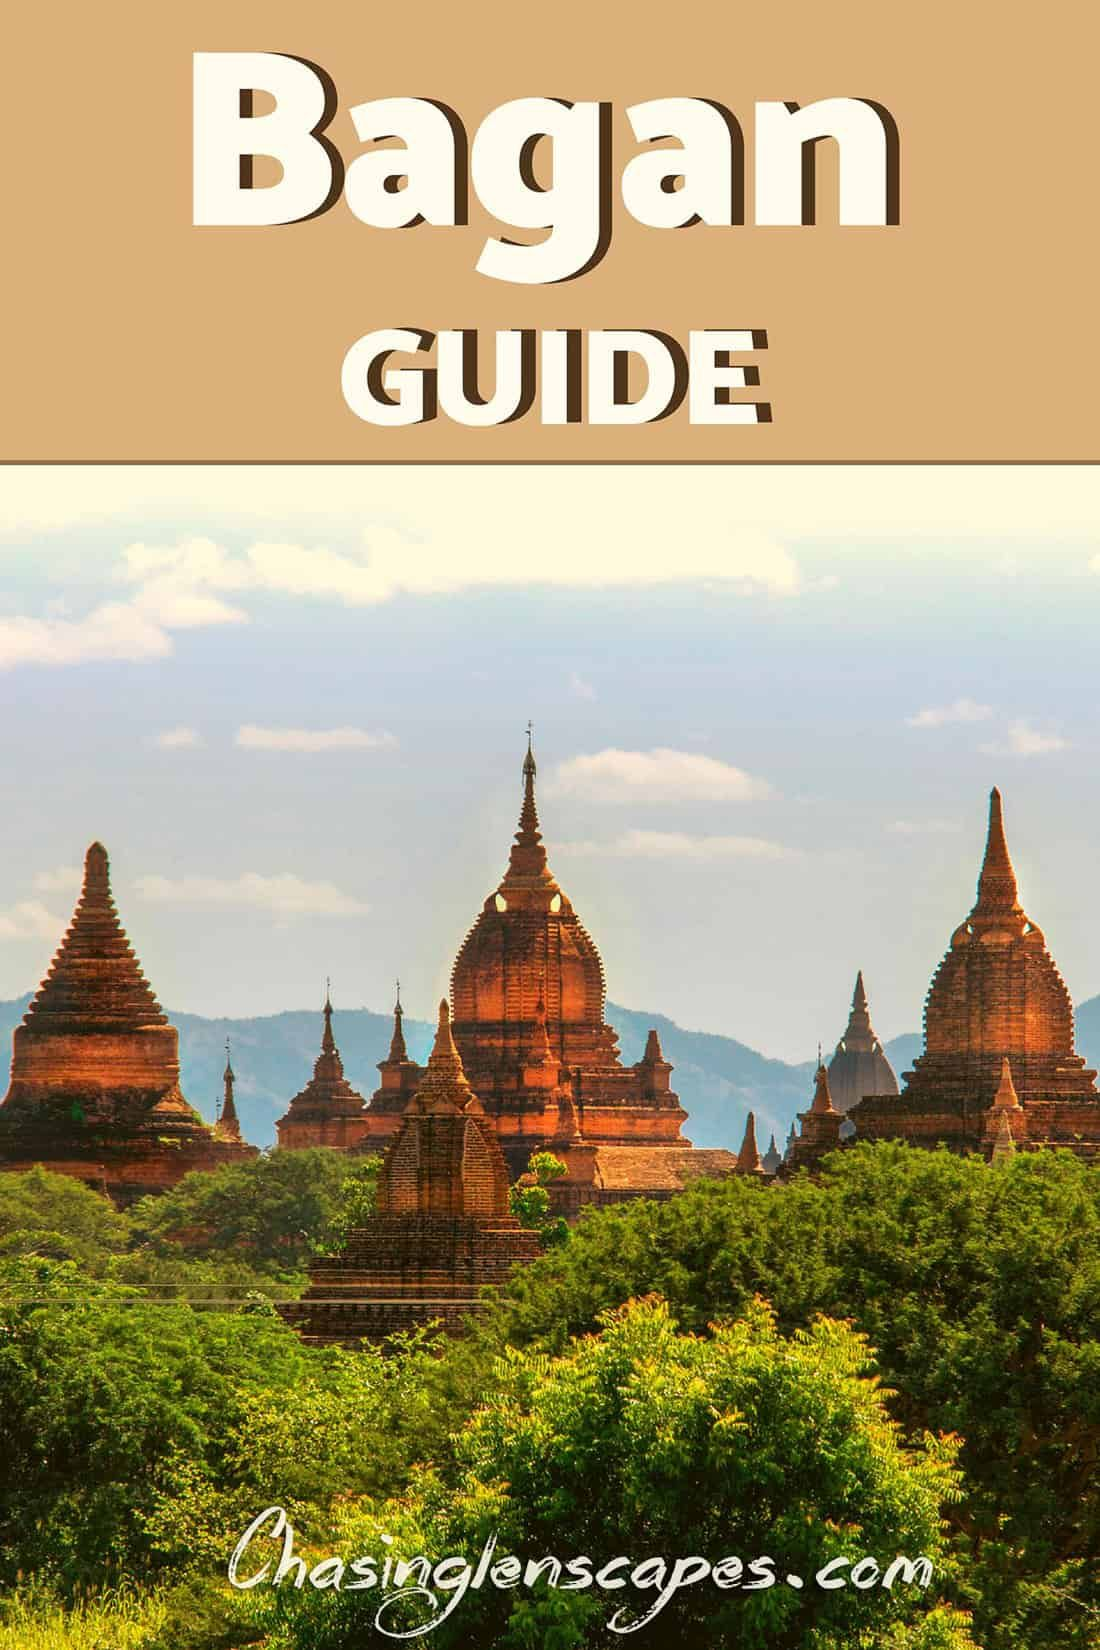 Things To Do In Bagan - Best Tips for your Bagan Itinerary